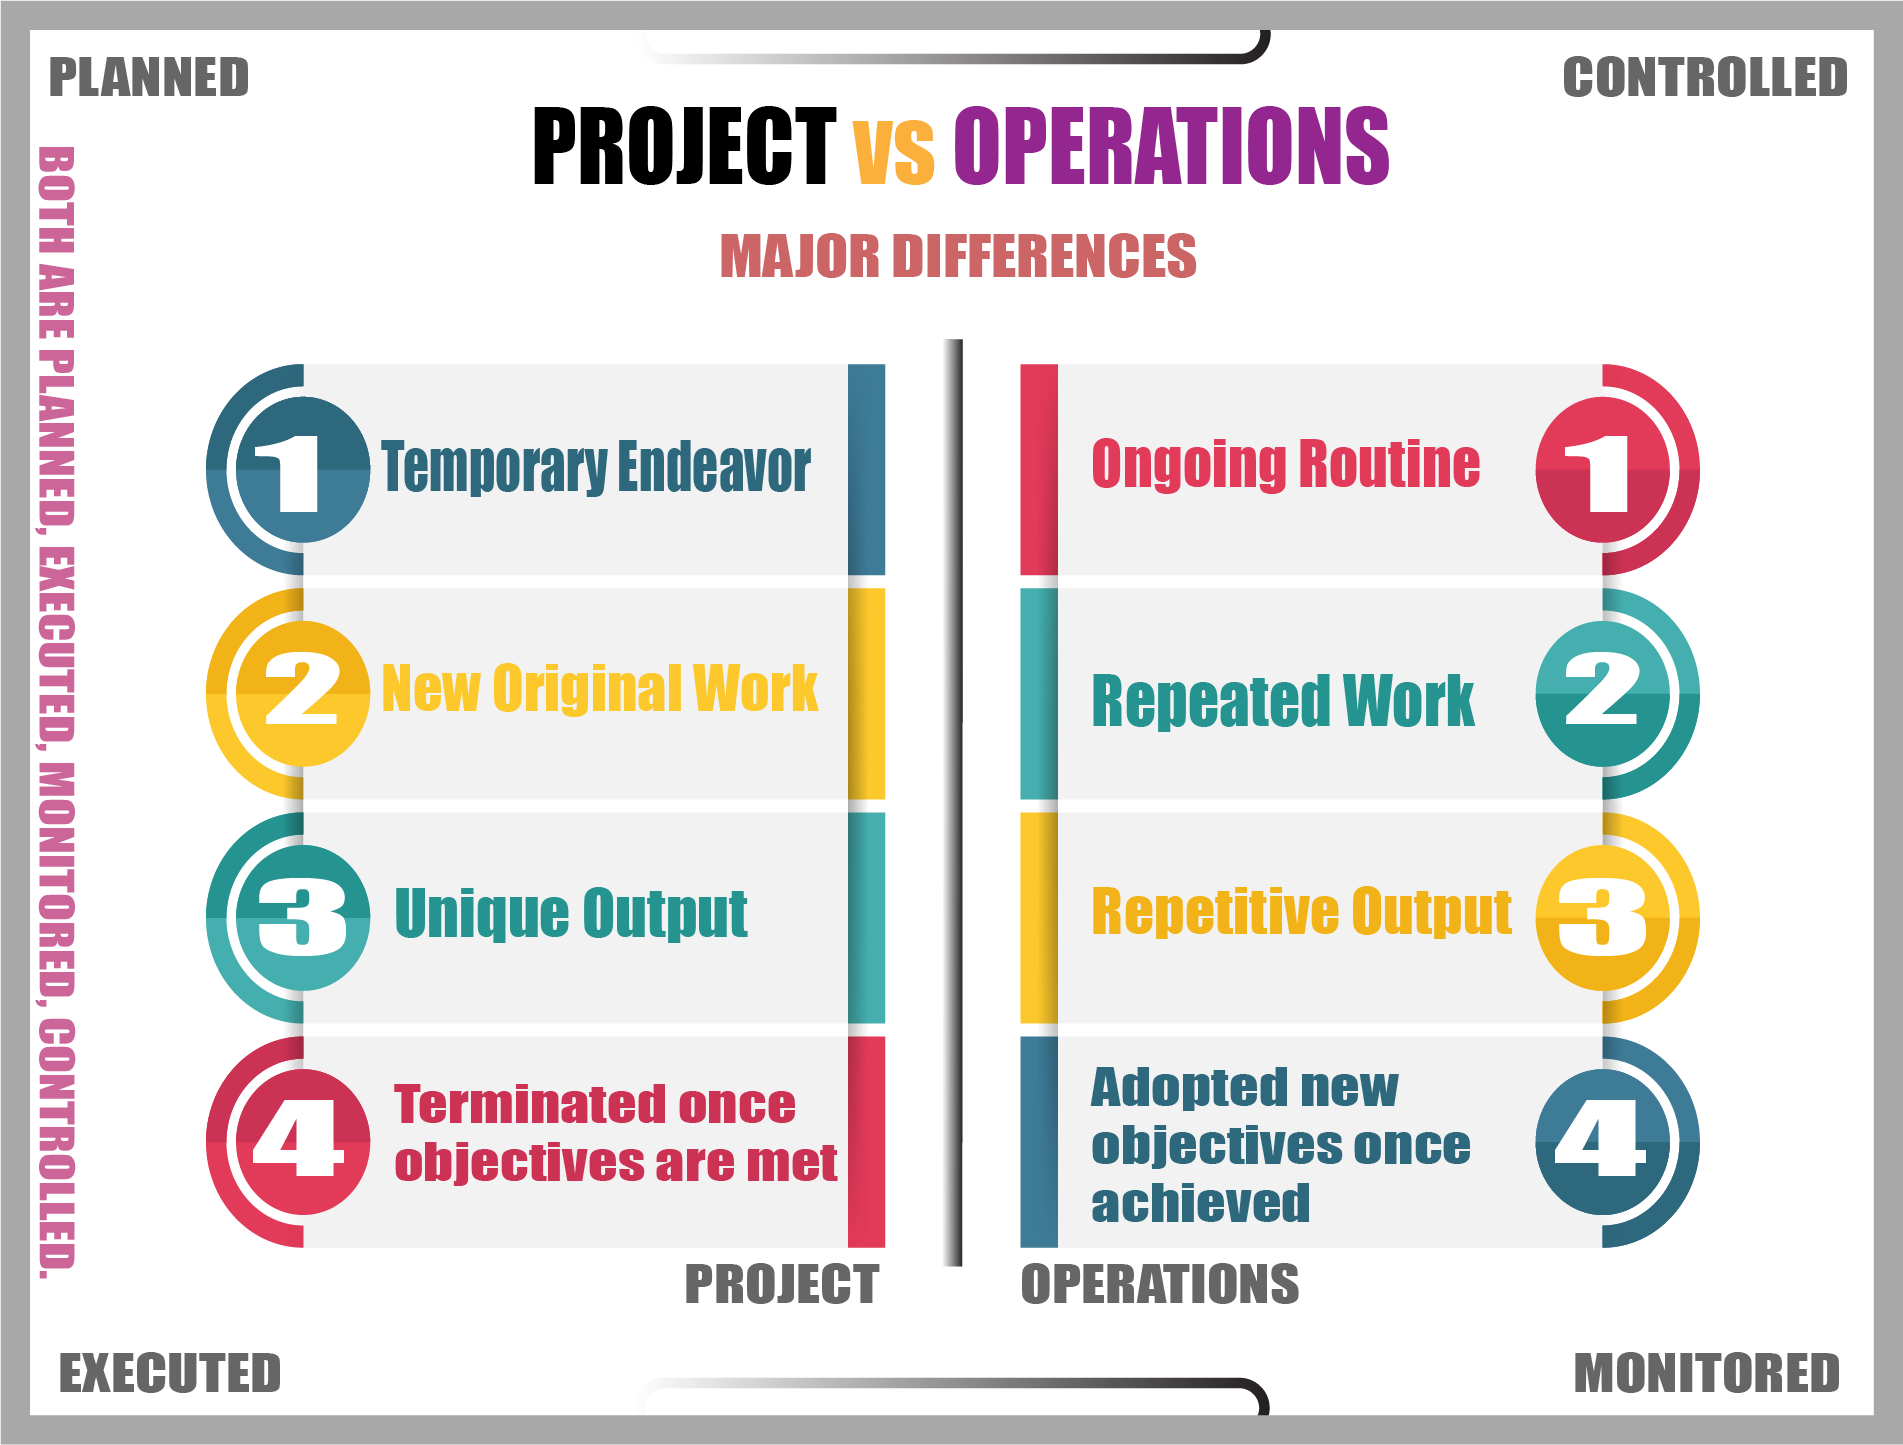 Project Vs Operations.